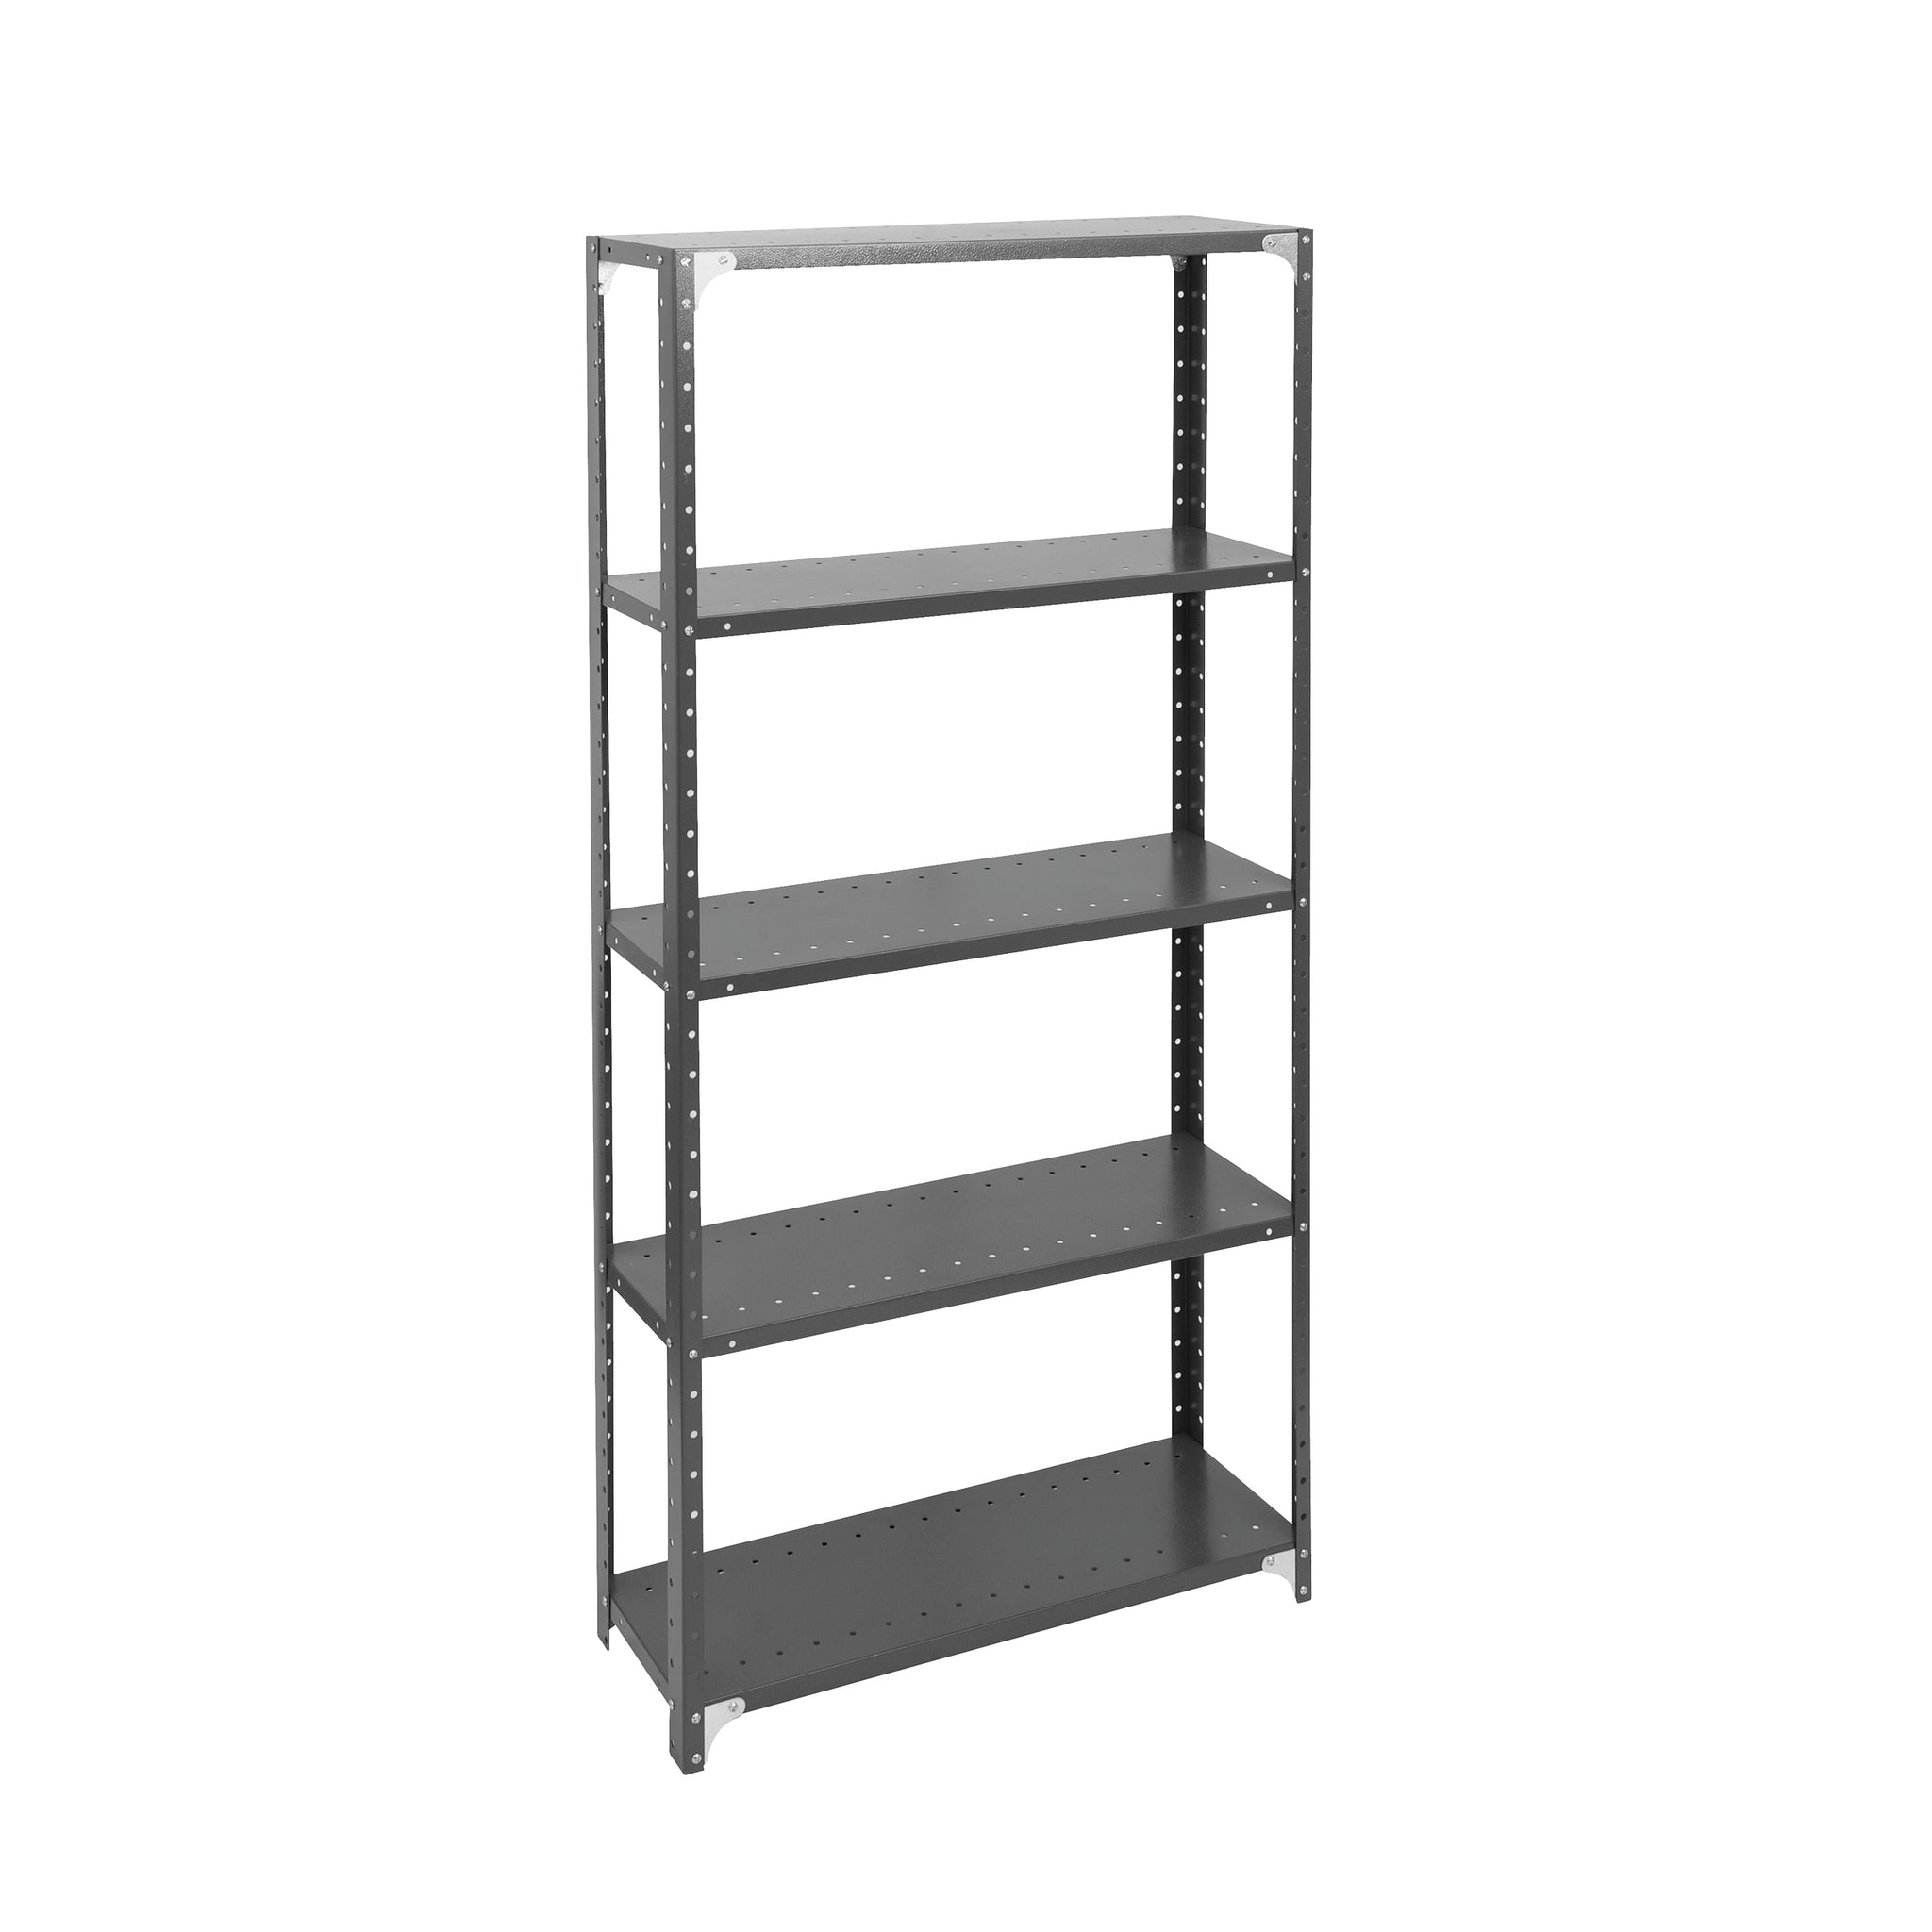 Hedcor Metal Shelving units